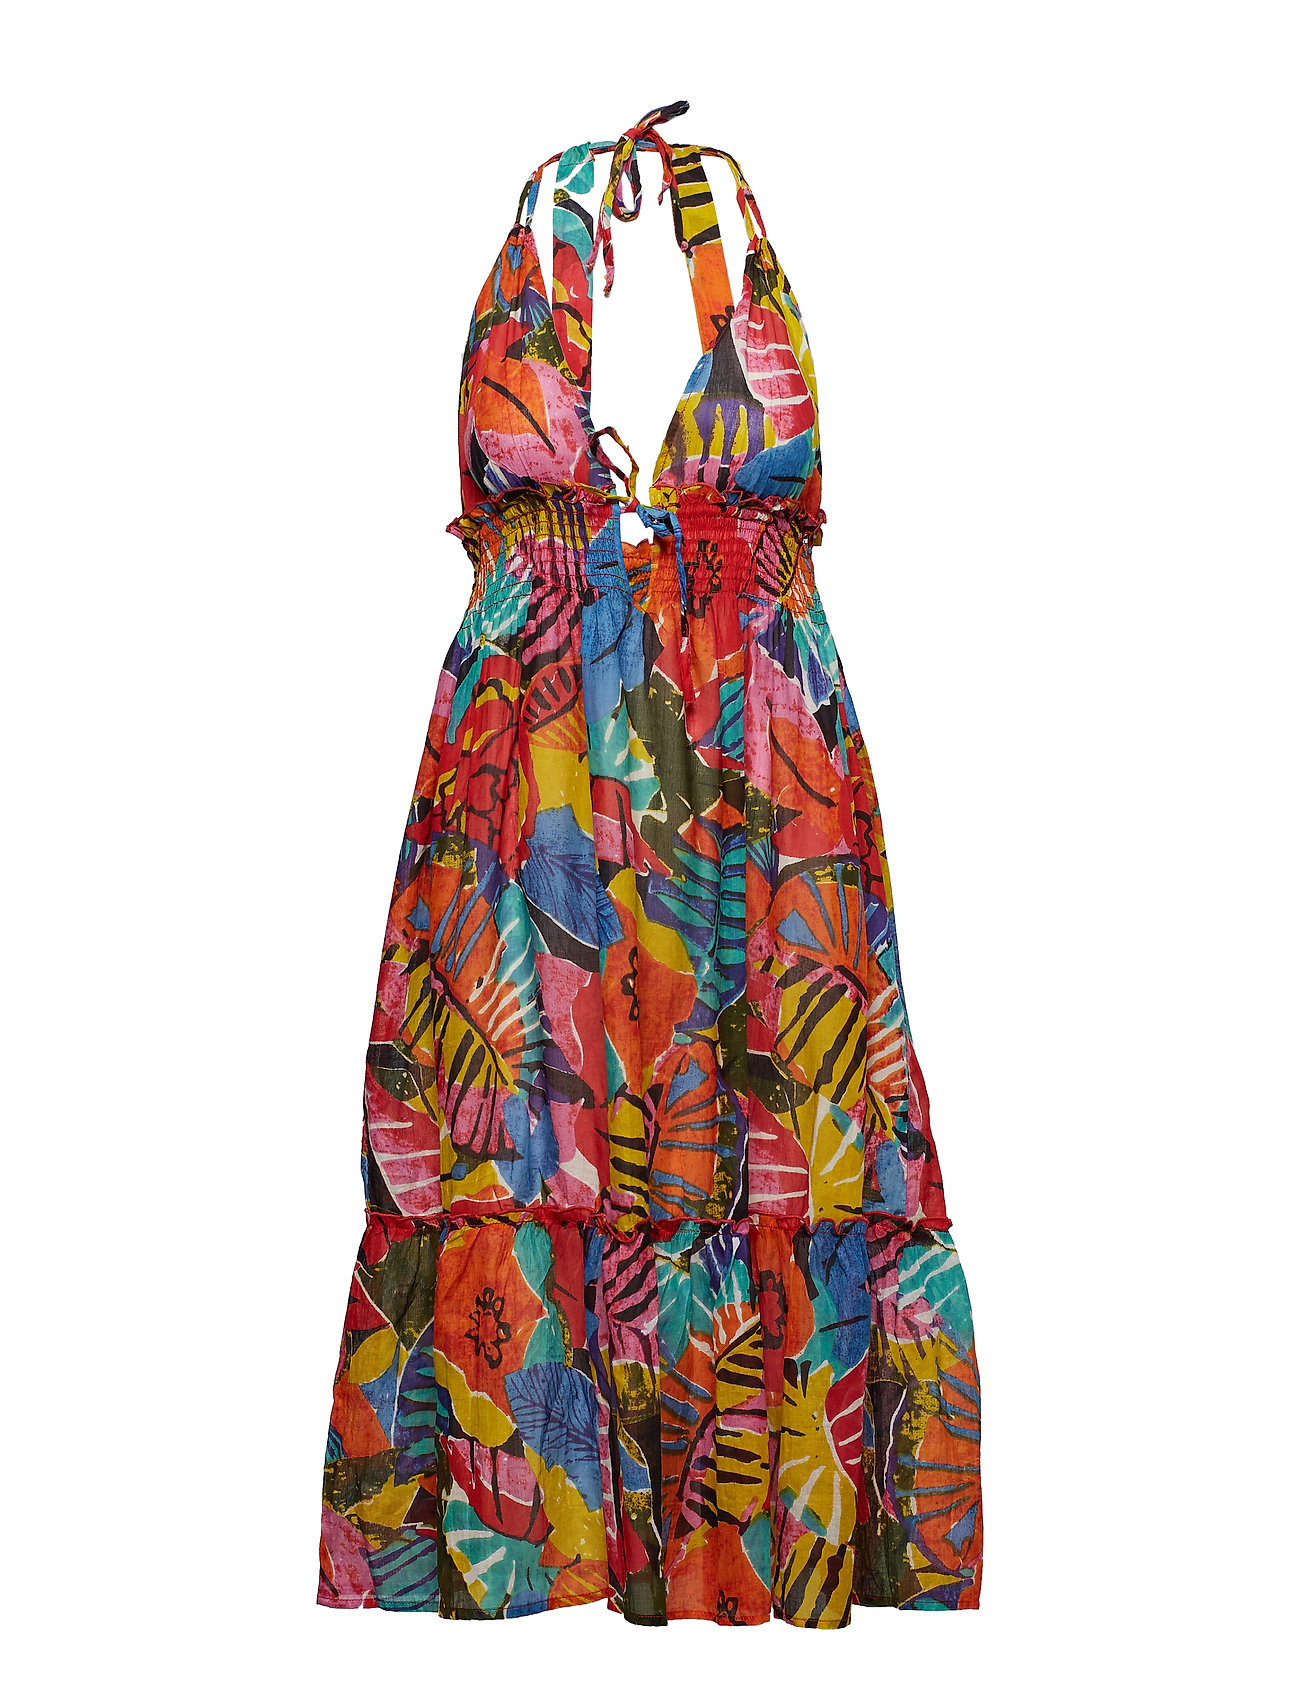 Polo Ralph Lauren Swimwear Batik Floral Halter Dress